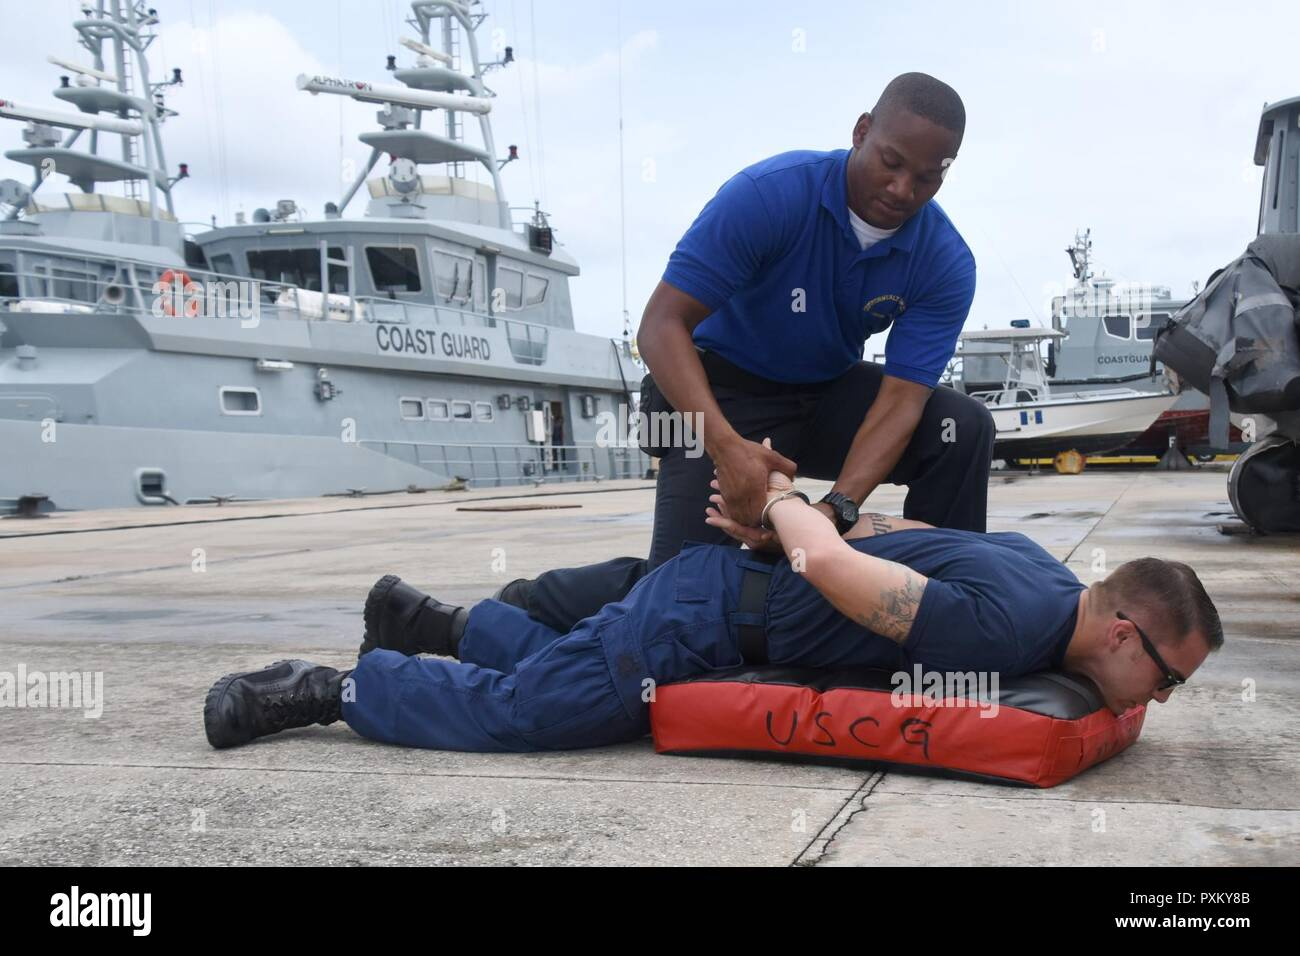 Steven Celestine, a member of the Commonwealth of Dominica Coast Guard, practices handcuffing during Exercise Tradewinds 2017 at the Barbados Coast Guard Base in Bridgetown, Barbados, June 9, 2017. Tradewinds 2017 is a joint, combined exercise conducted in conjunction with partner nations to enhance the collective abilities of defense forces and constabularies to counter transnational organized crime, and to conduct humanitarian/disaster relief operations. - Stock Image